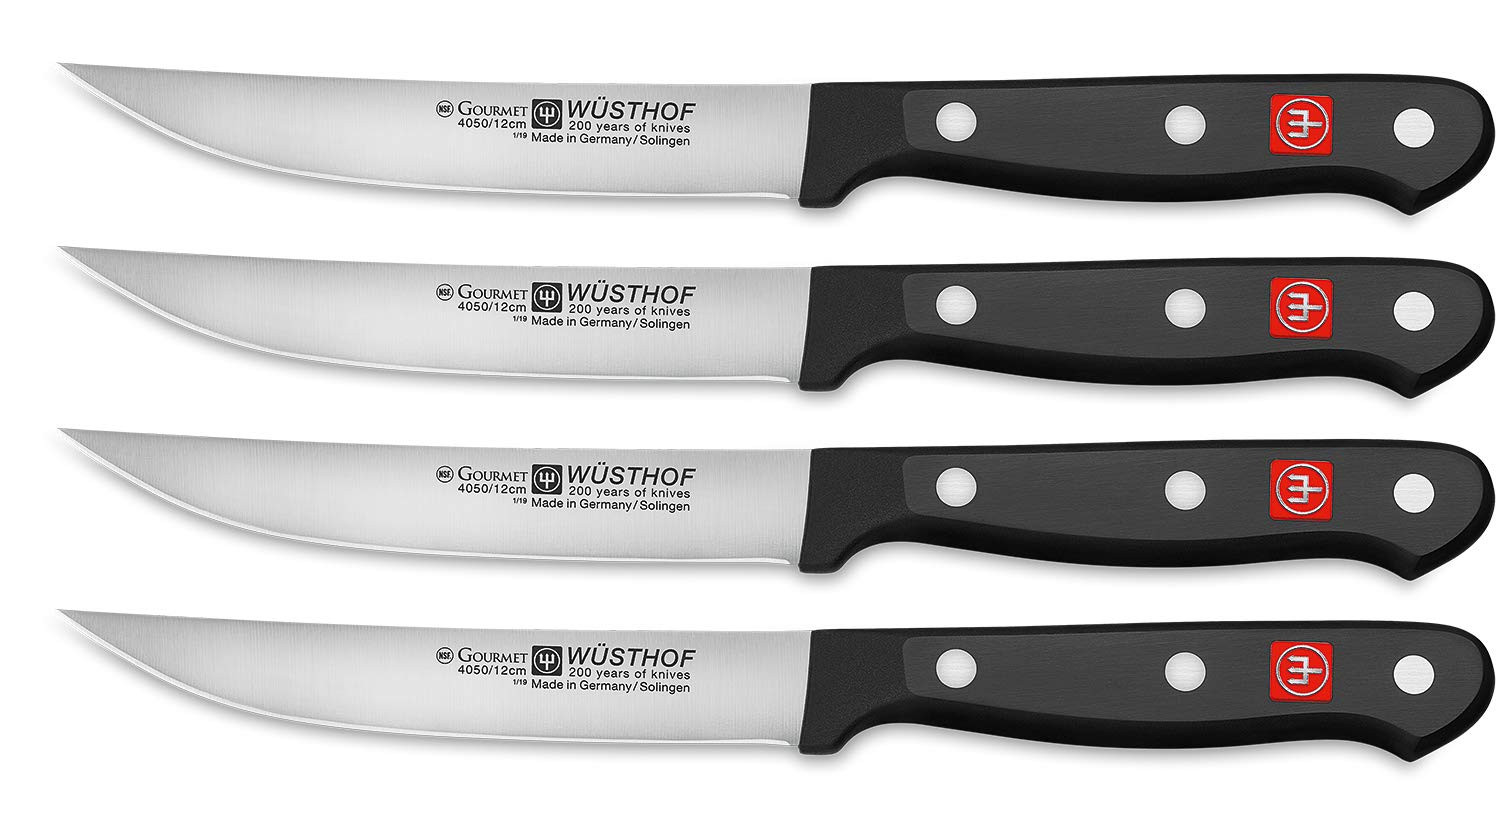 Wusthof Gourmet Four 4-Piece German Precise Laser Cut High Carbon Stainless Steel Kitchen Steak Knife Set – Model 9729